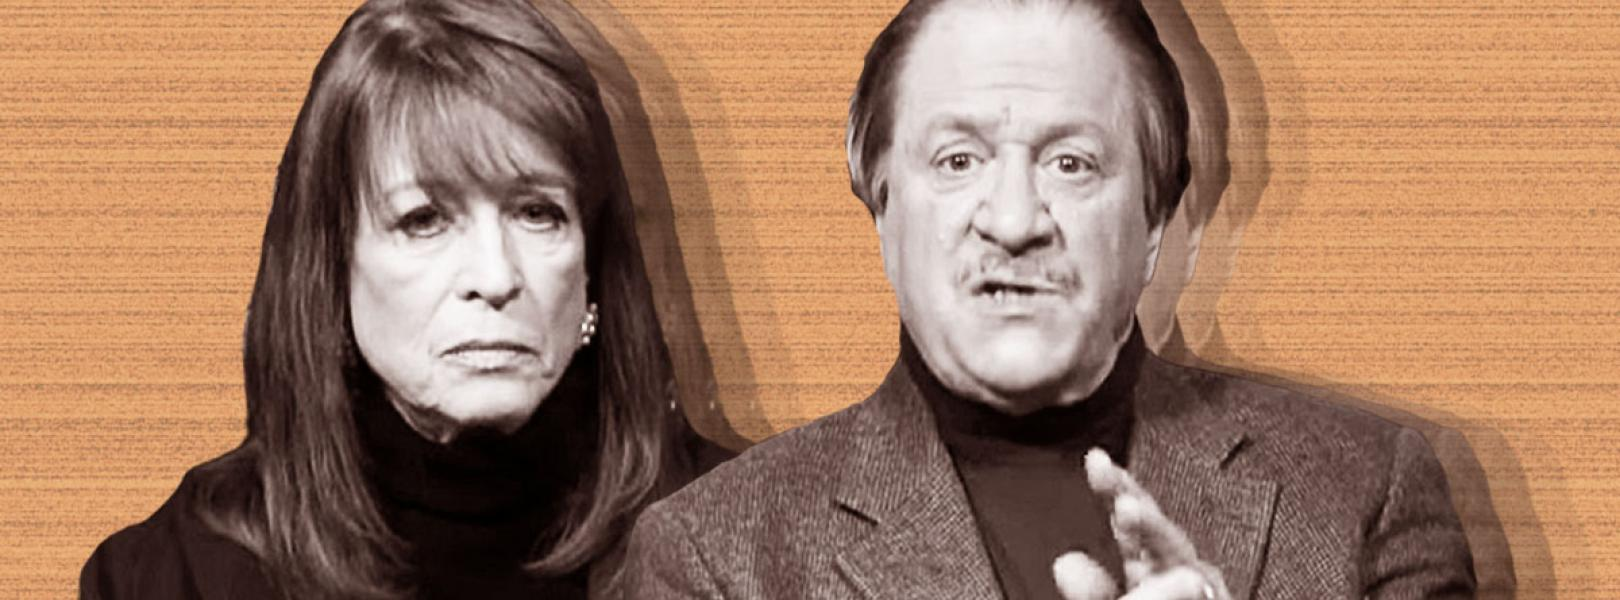 Joe diGenova and Victoria Toensing